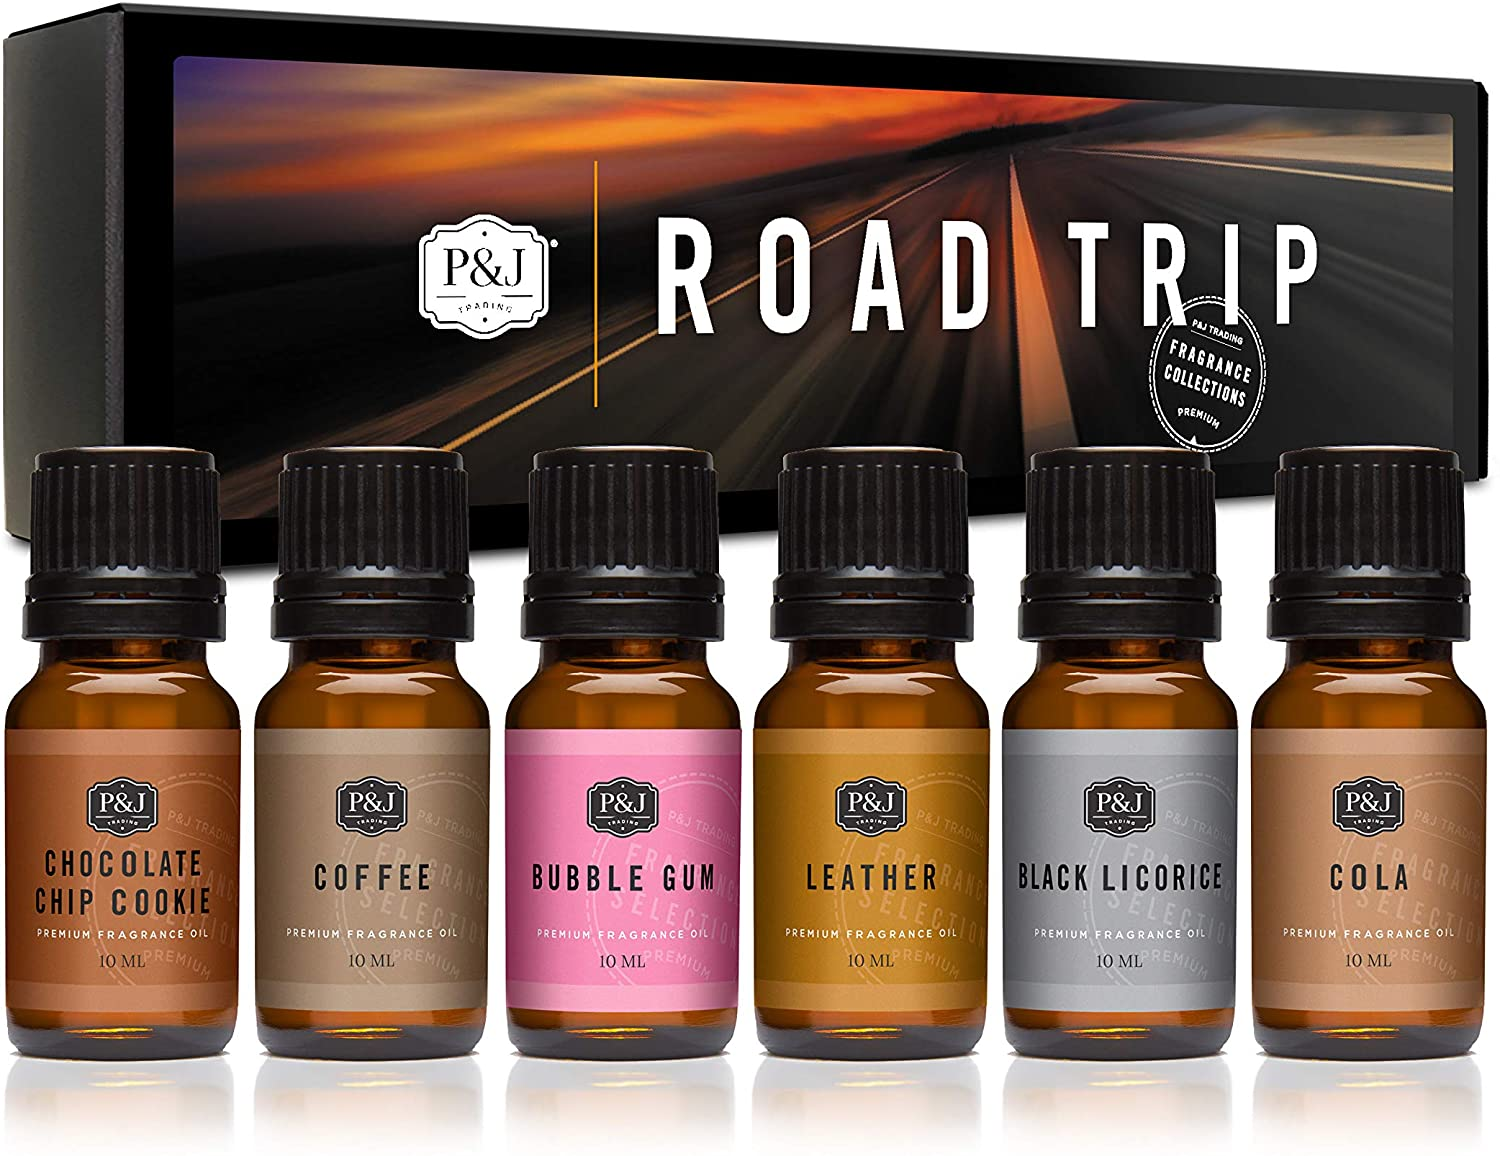 PJ Trading Fragrance Oil Road Trip of Set Quality inspection Max 62% OFF - for Scented 6